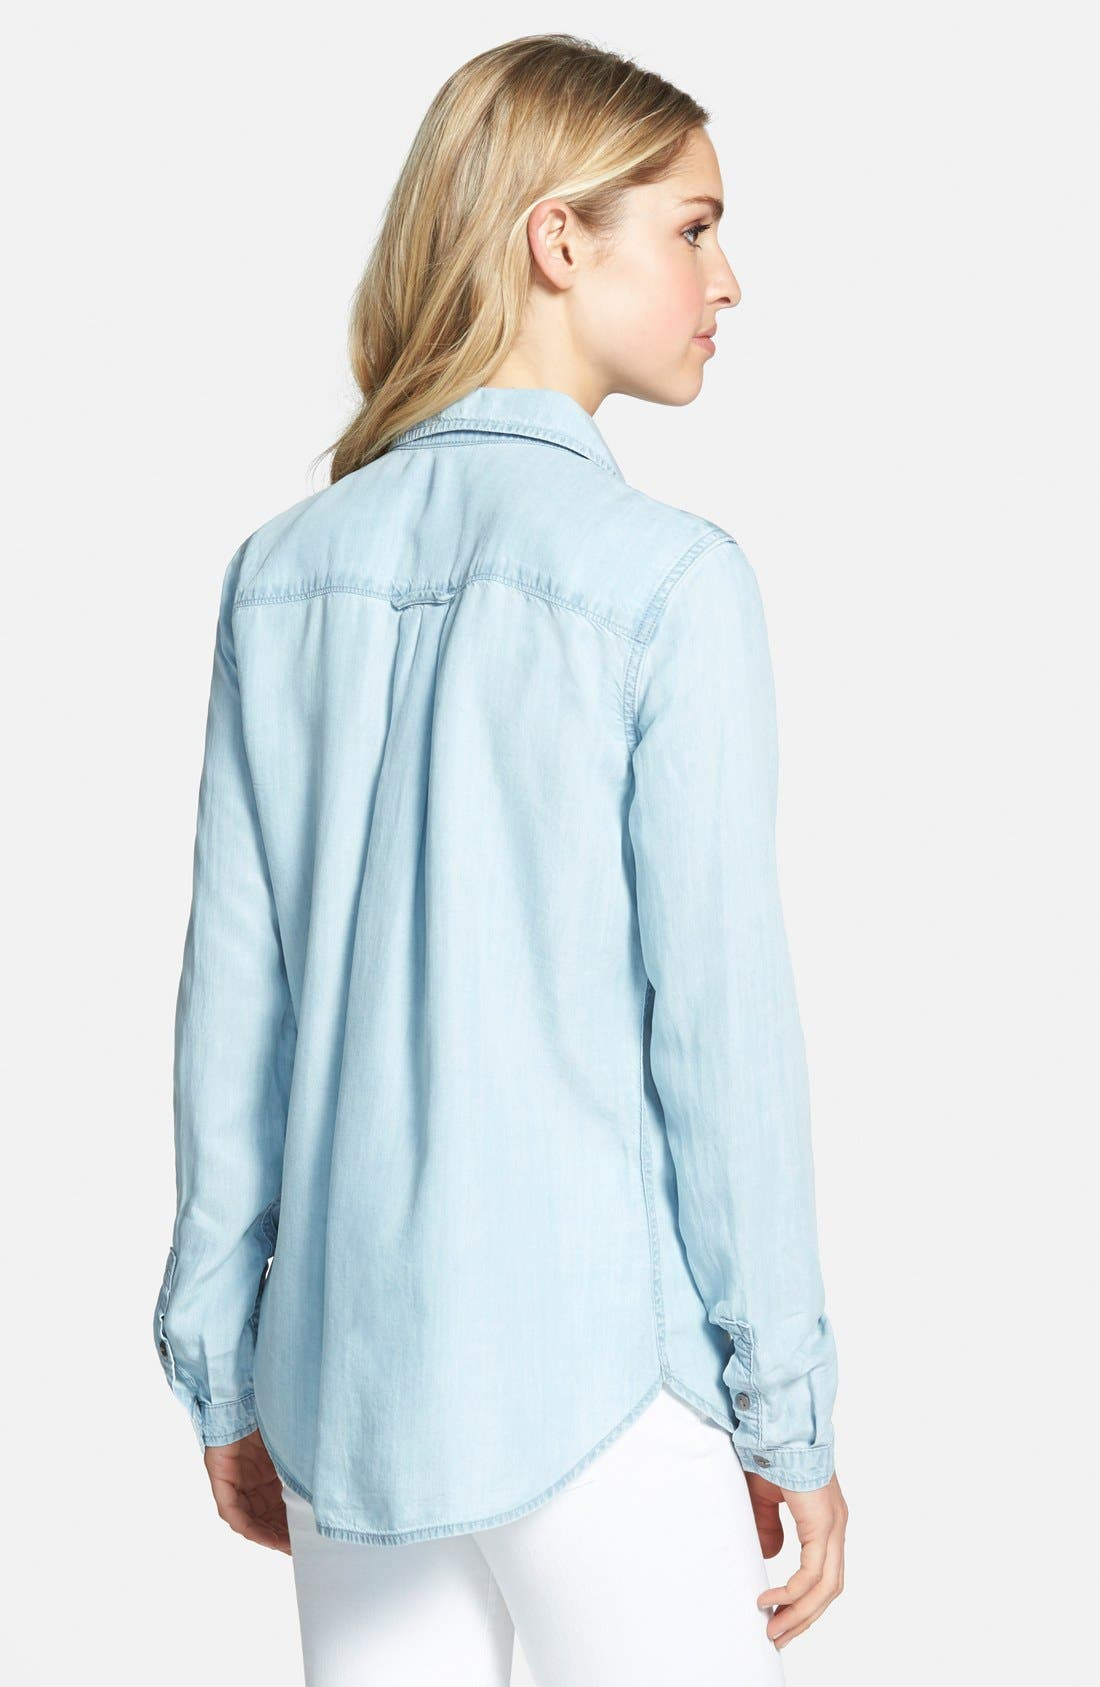 PAIGE, Denim 'Bellamy' Button Front Denim Shirt, Alternate thumbnail 3, color, 400